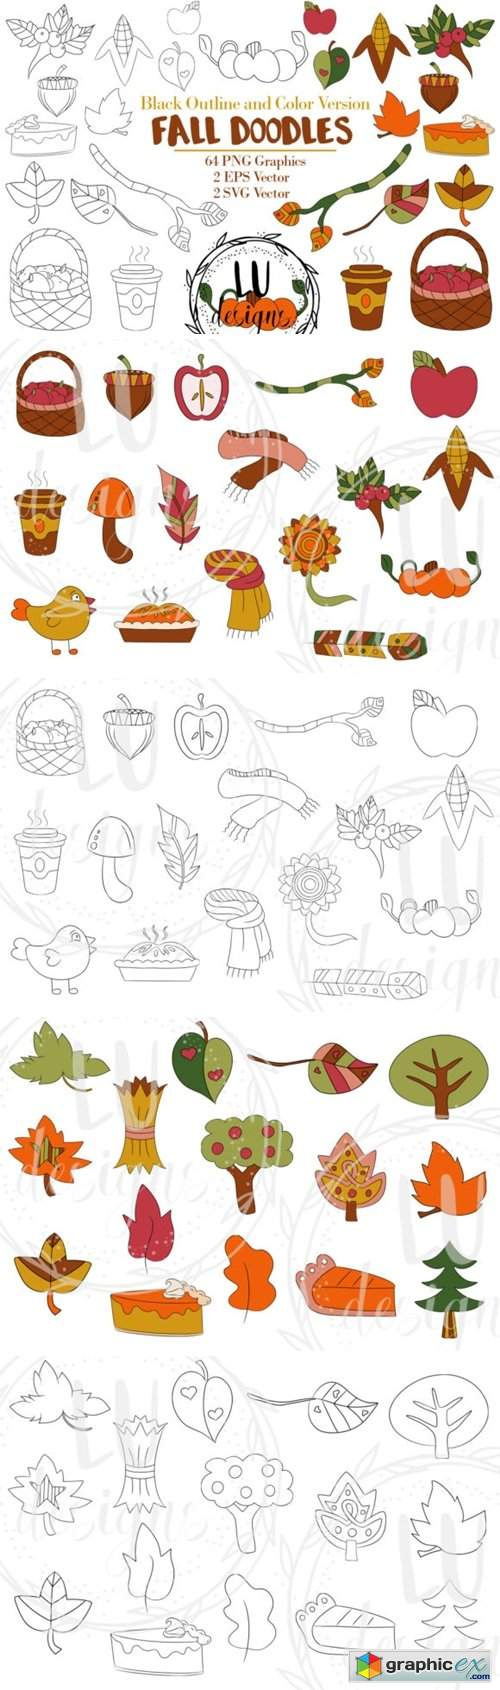 Fall Doodles Clipart, Autumn Graphics